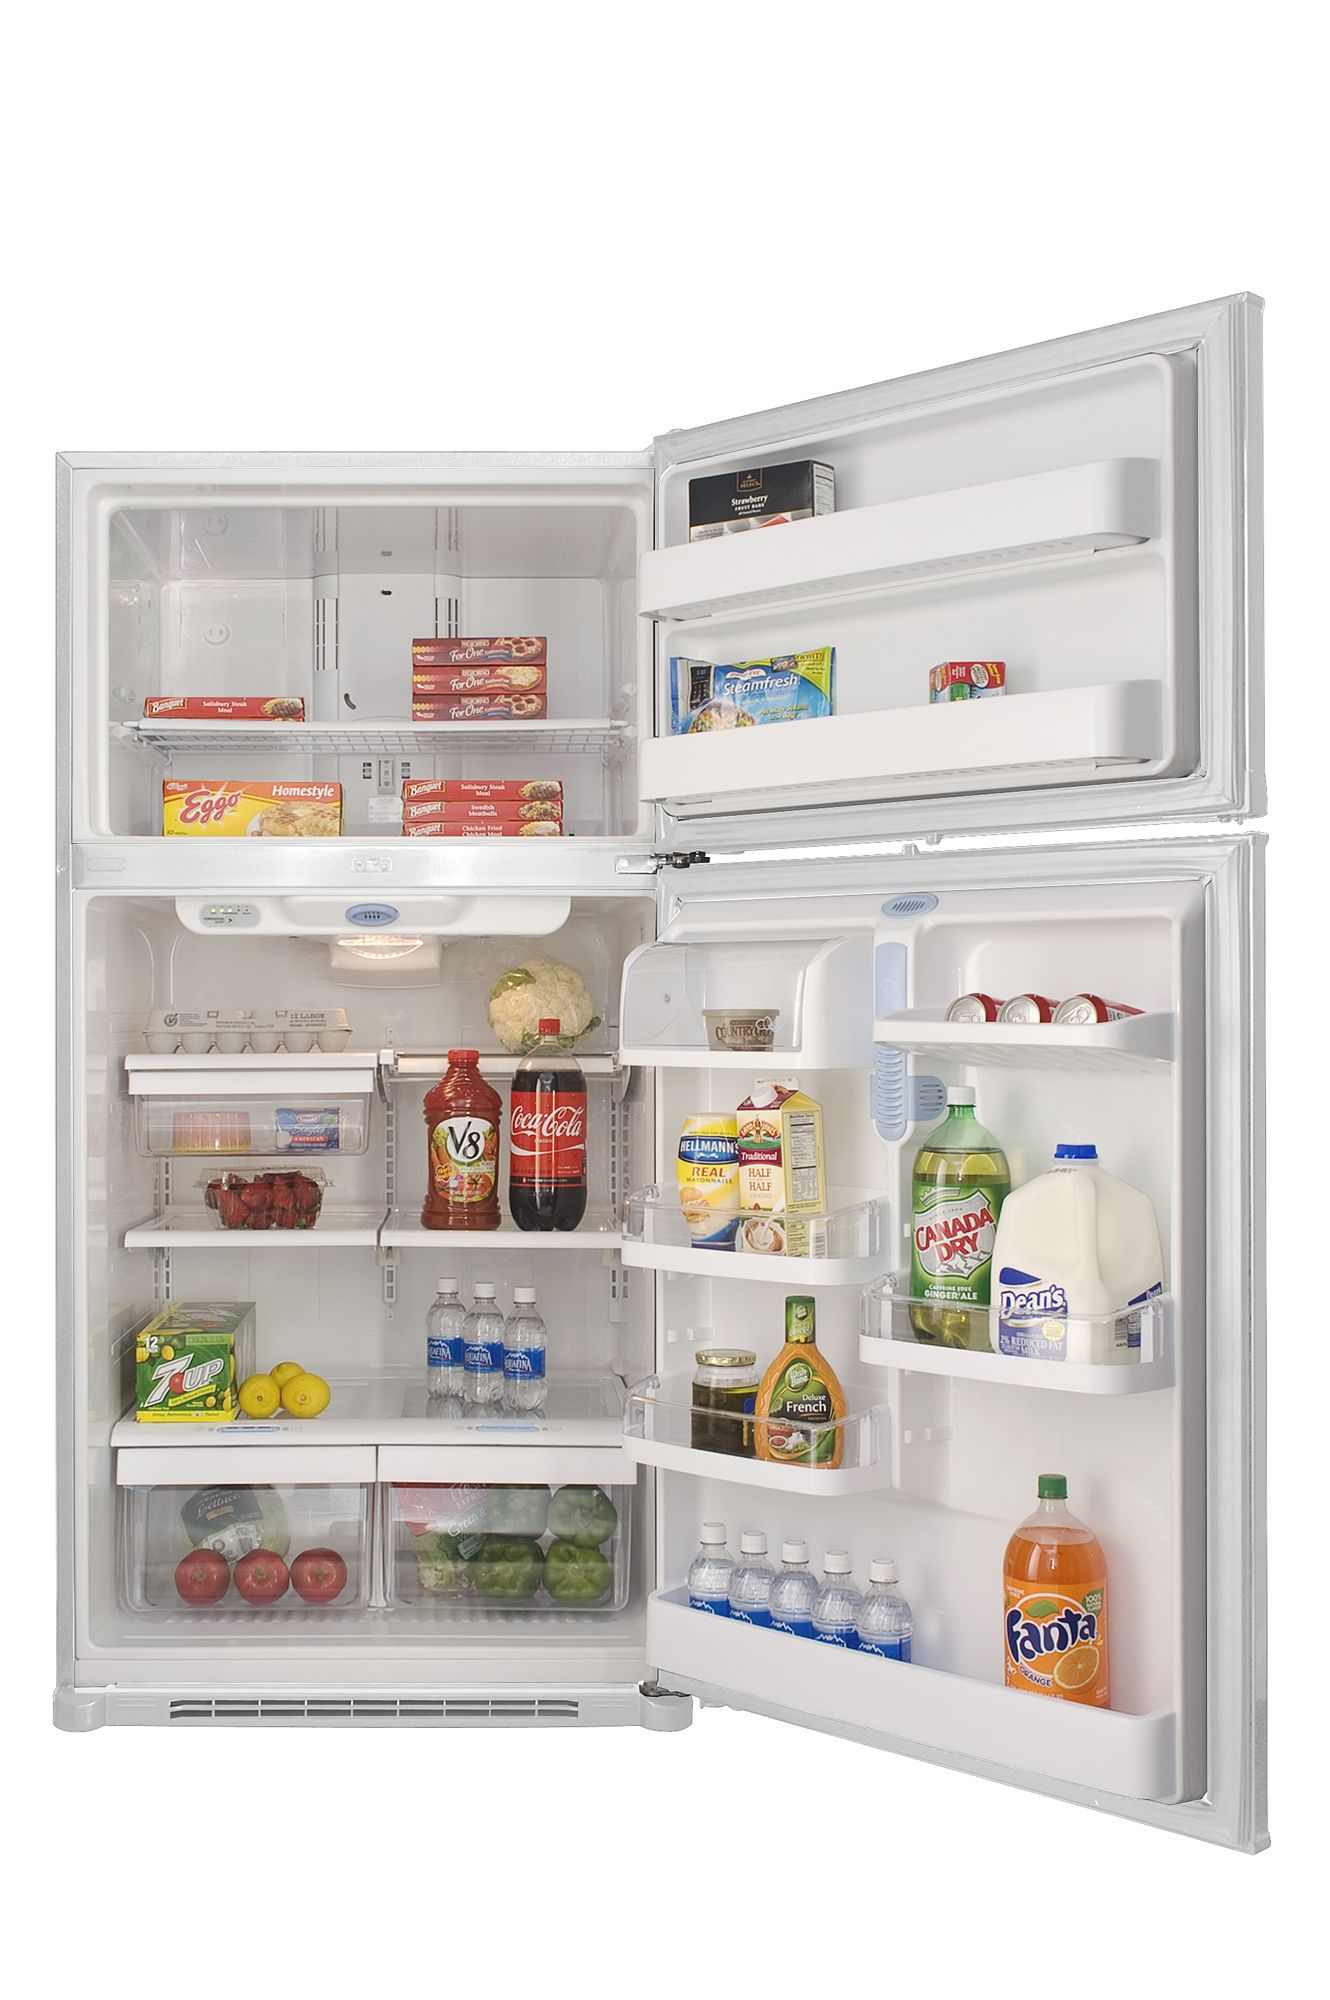 Kenmore 22.1 cu. ft. Top Freezer Refrigerator - White